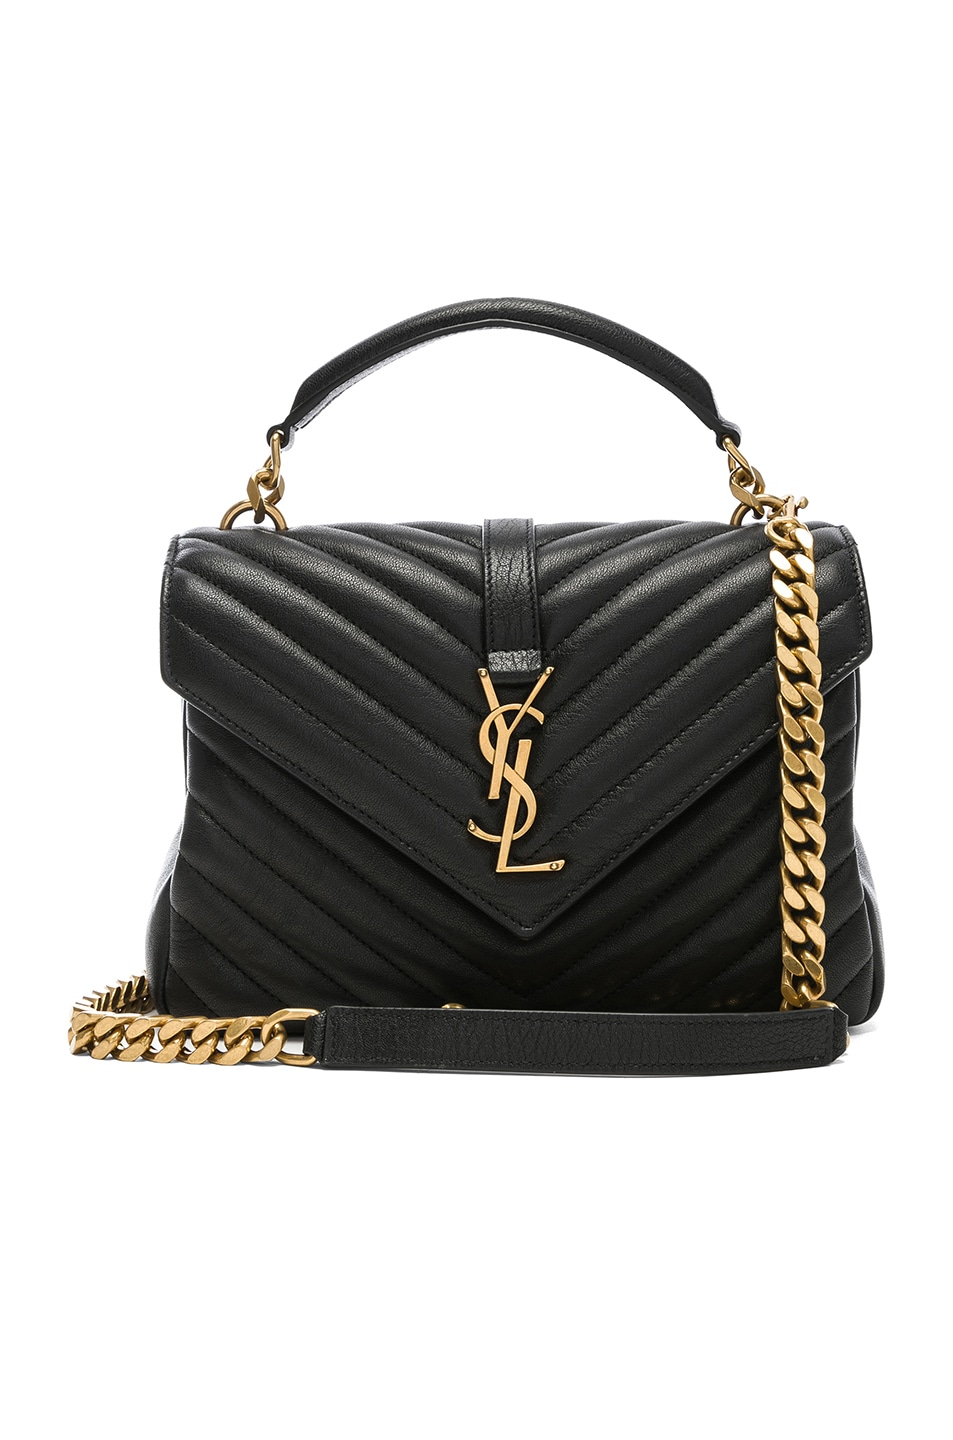 Image 1 of Saint Laurent Medium Monogramme College Bag in Black